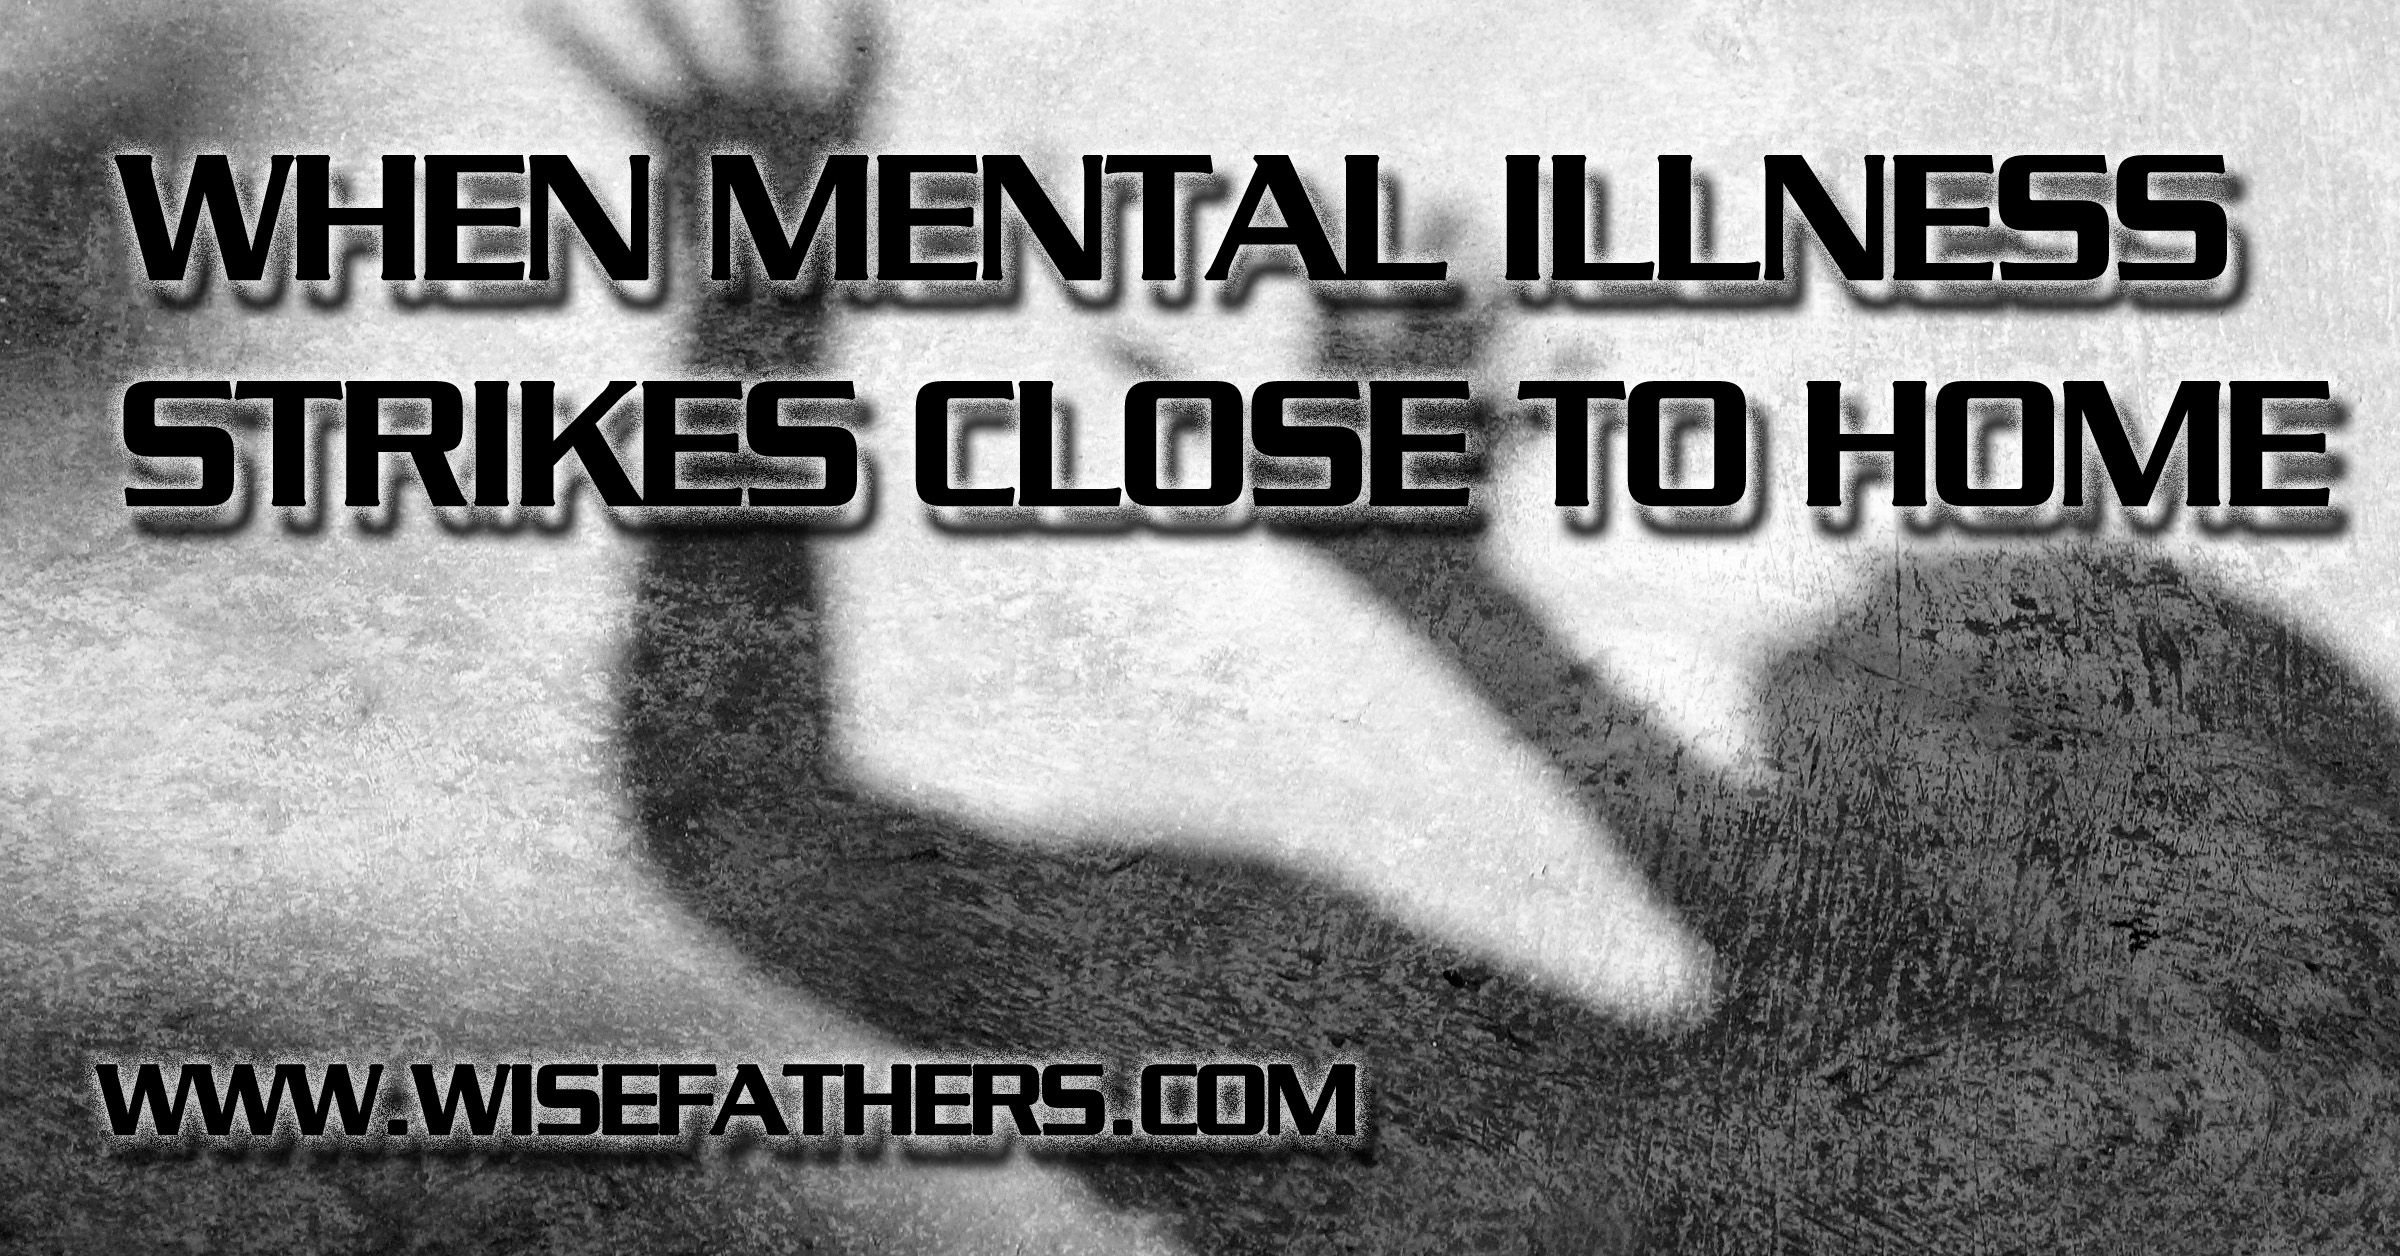 When Mental Illness Strikes Close to Home